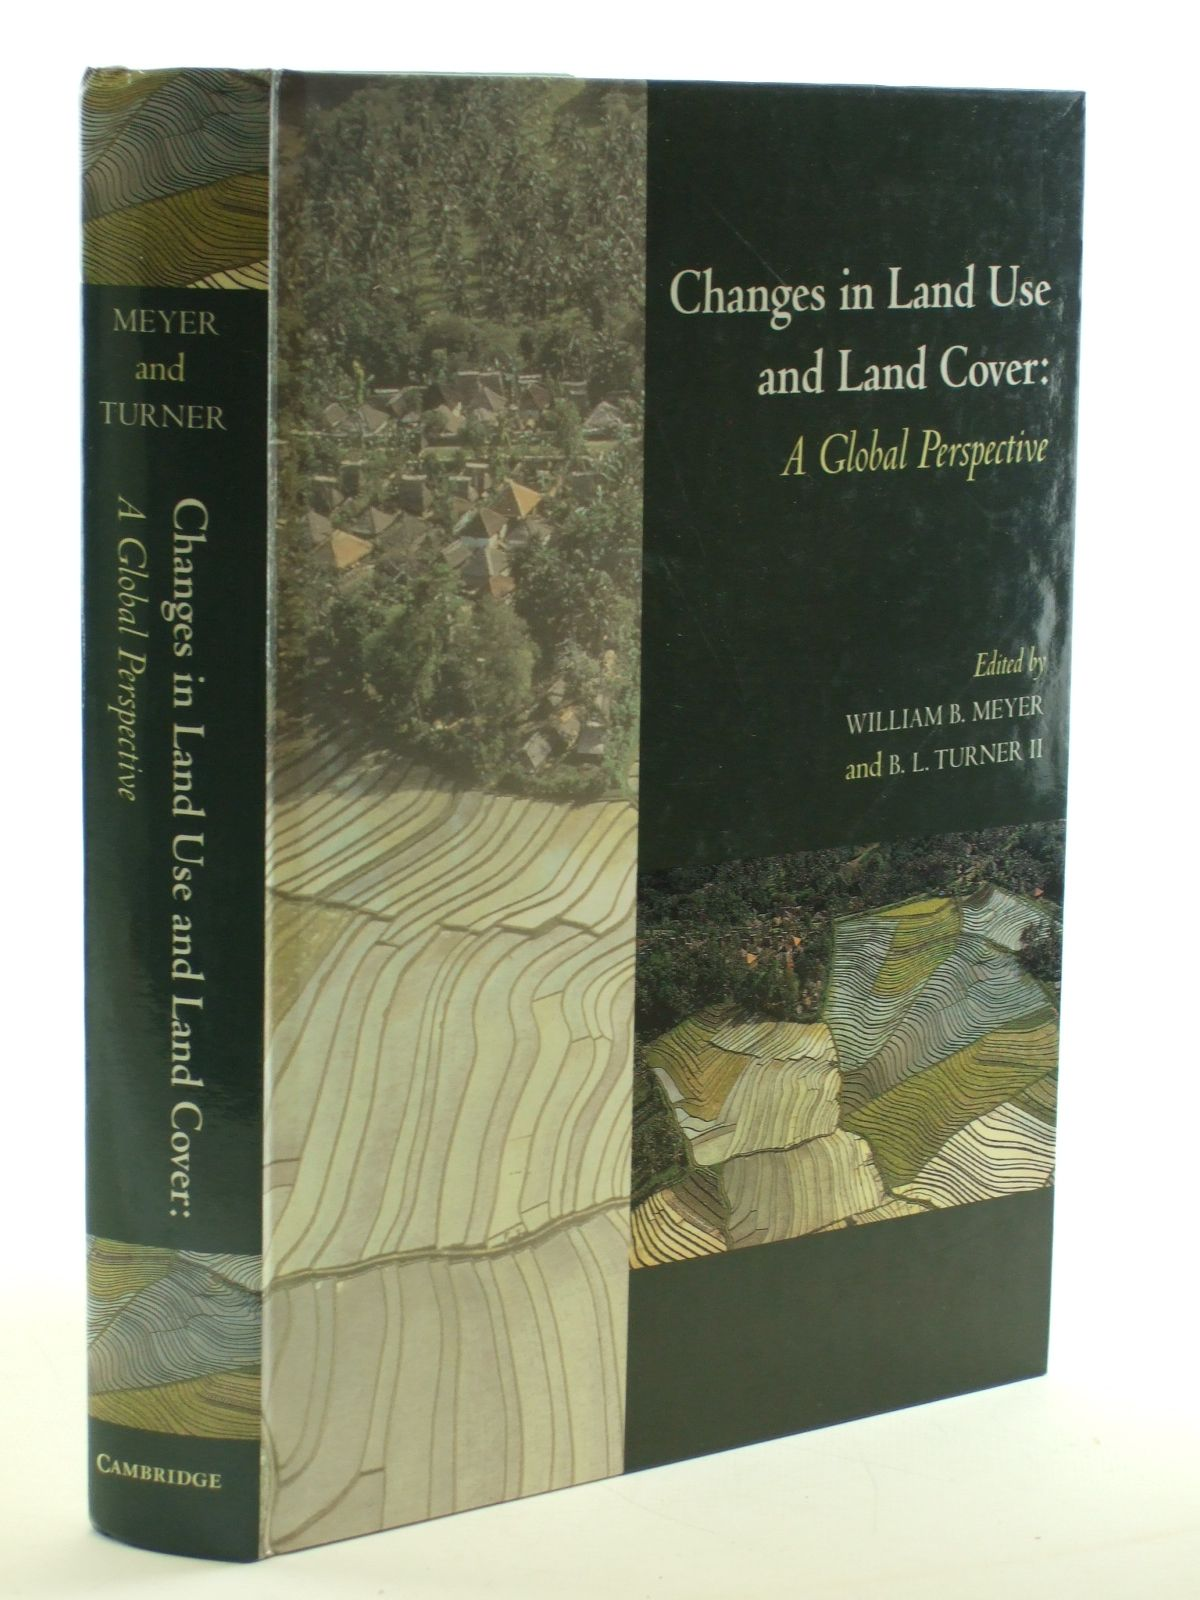 Photo of CHANGES IN LAND USE AND LAND COVER: A GLOBAL PERSPECTIVE written by Meyer, William B. Turner, B.L. published by Cambridge University Press (STOCK CODE: 1602903)  for sale by Stella & Rose's Books